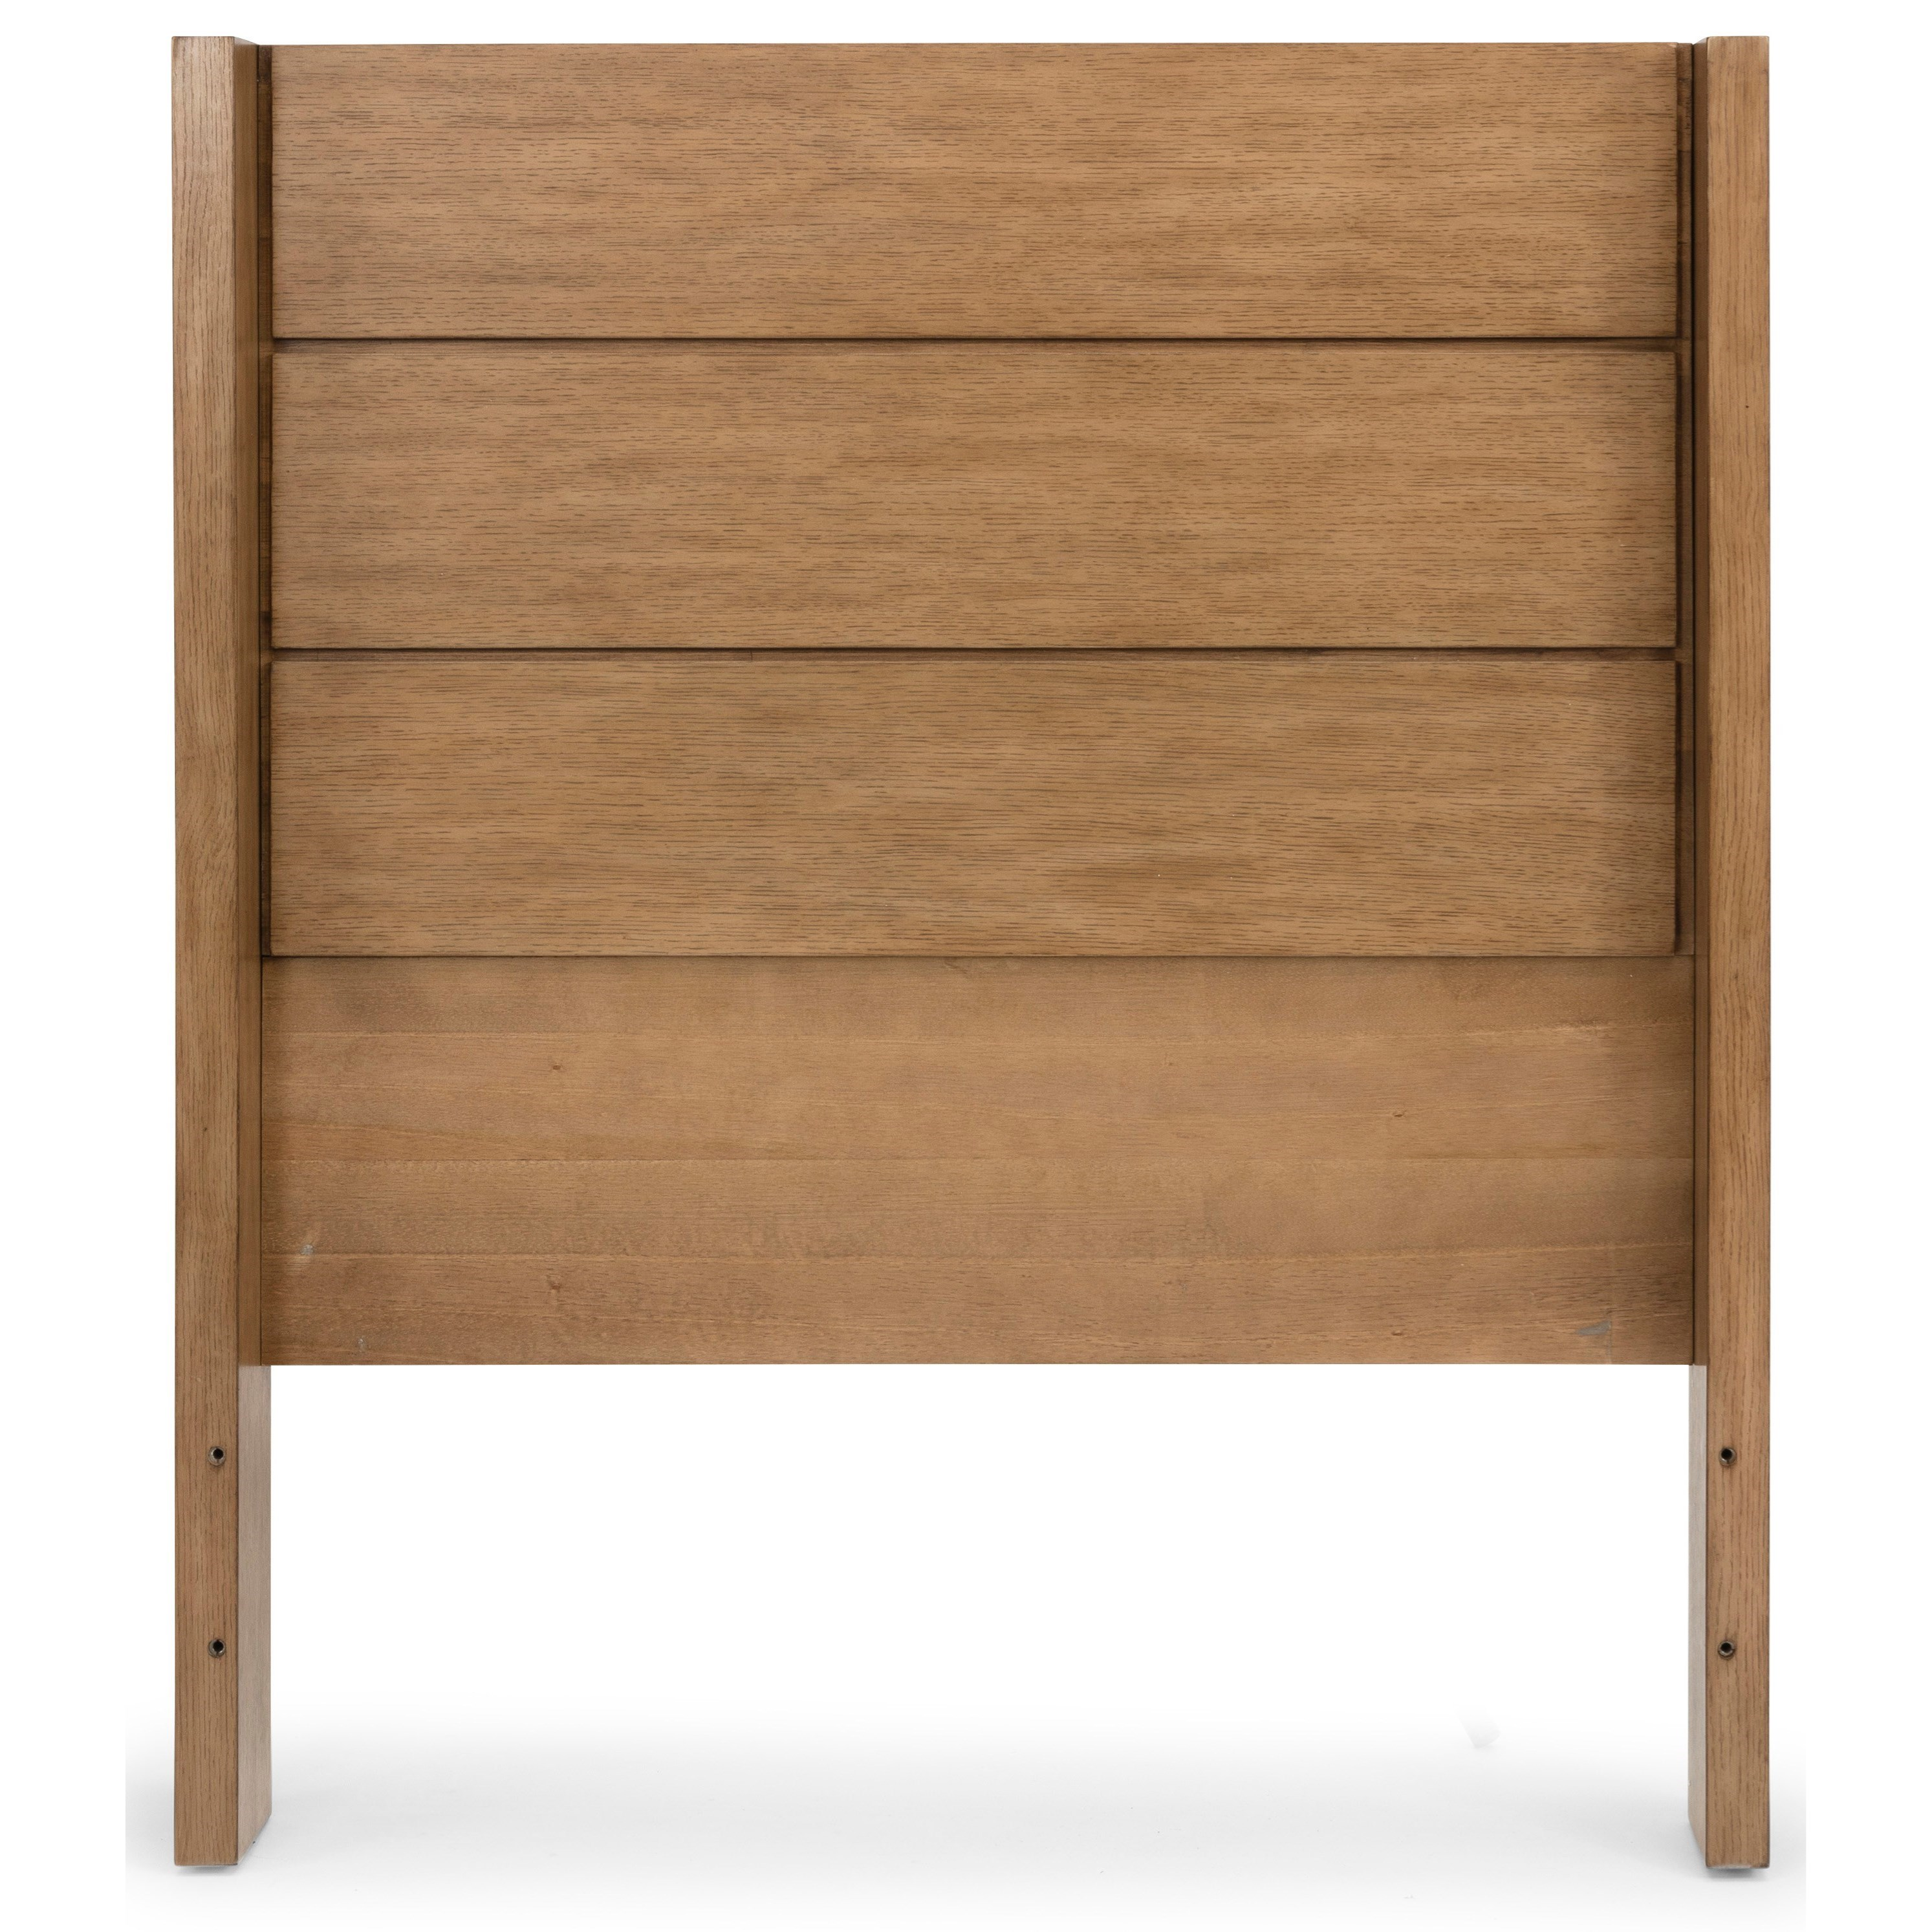 Big Sur Twin Headboard by Homestyles at Value City Furniture